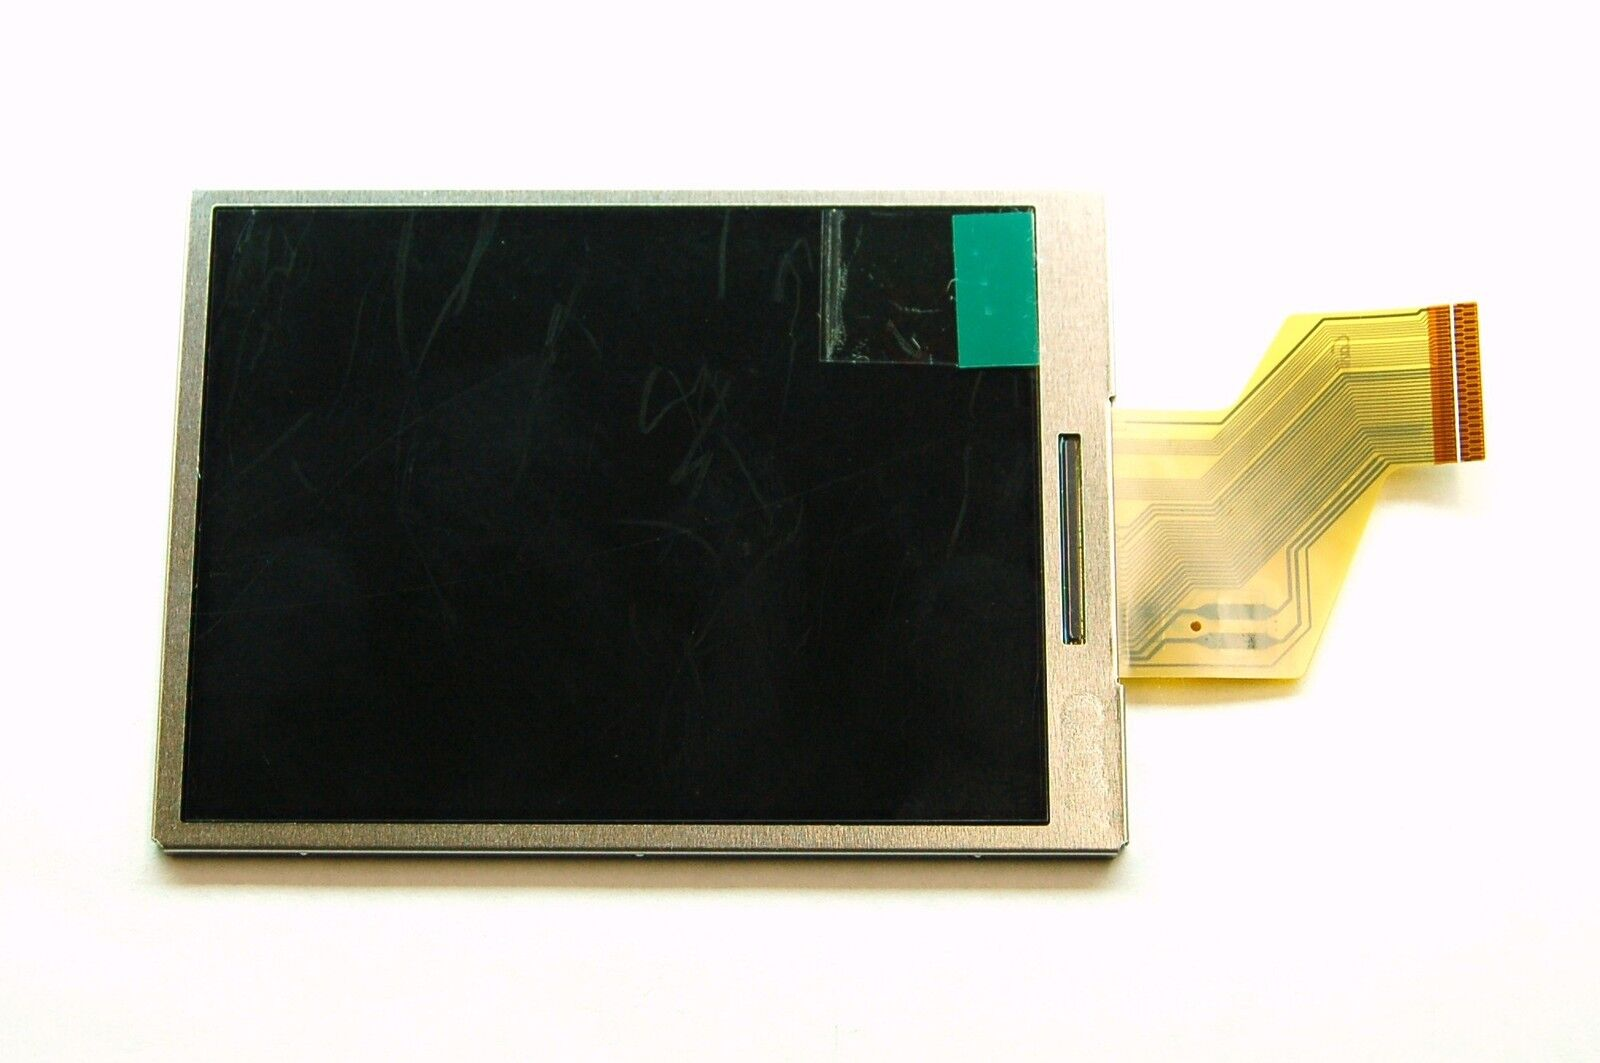 Sony Dsc-w370 Replacement Lcd Display Screen Monitor